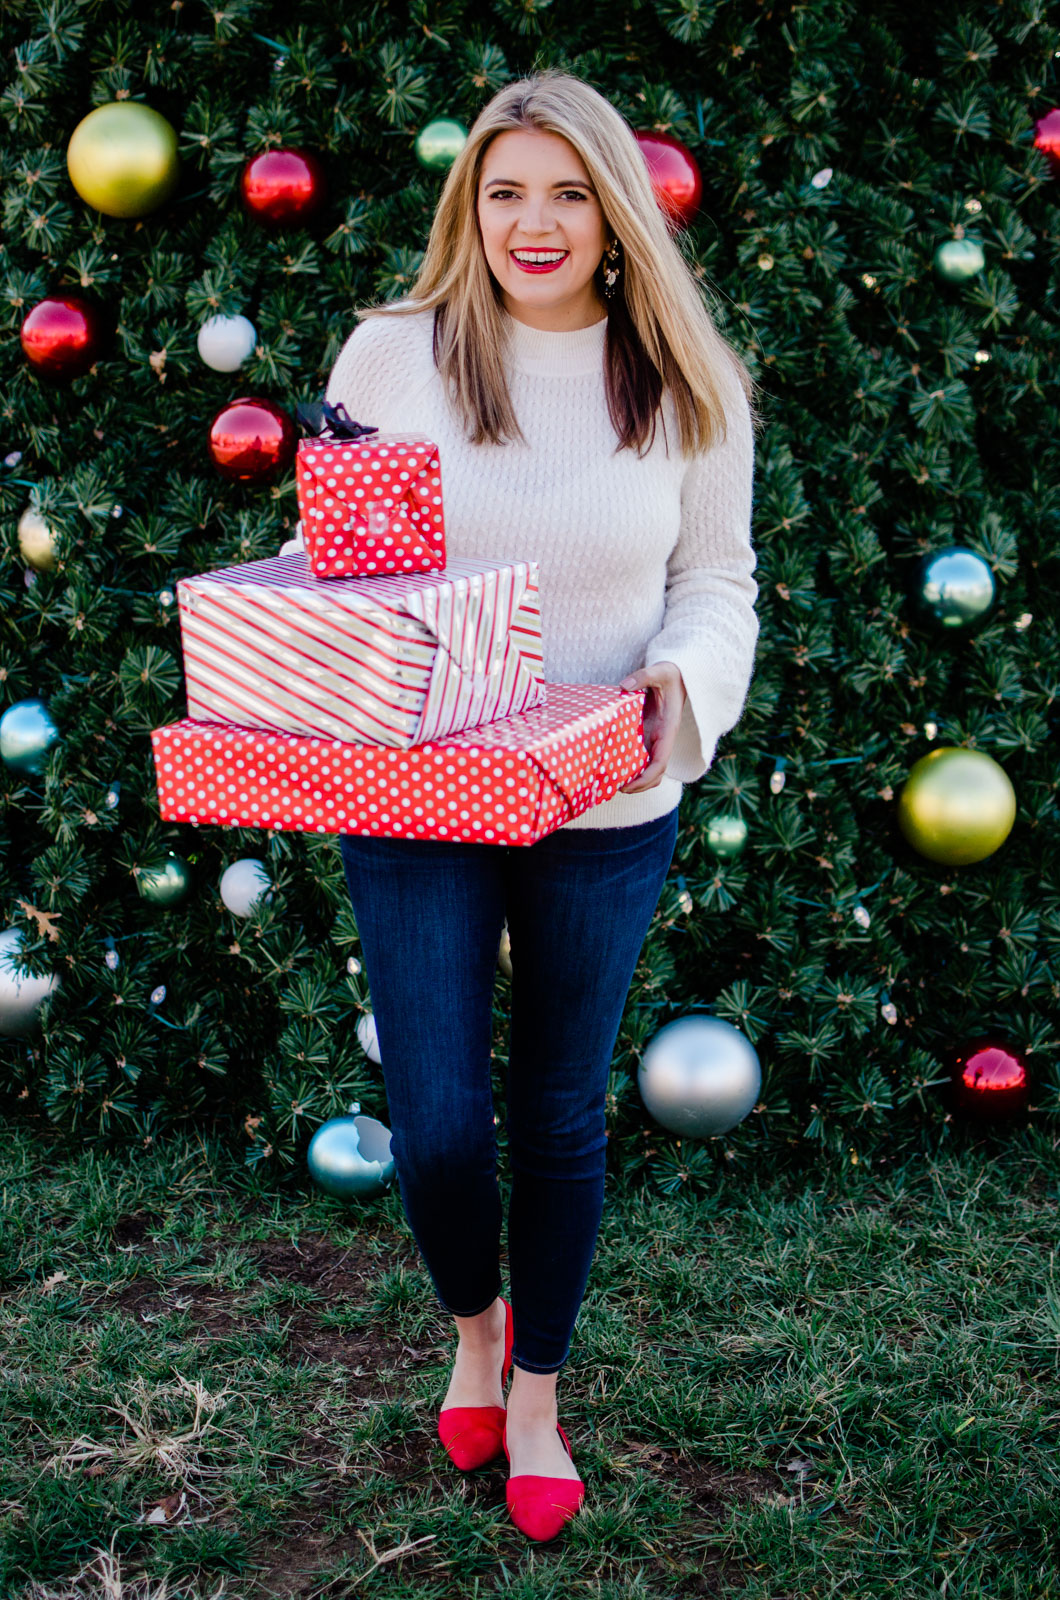 Lauren Dix of BylaurenM.com rounds up the very best of black friday and cyber monday sales 2018